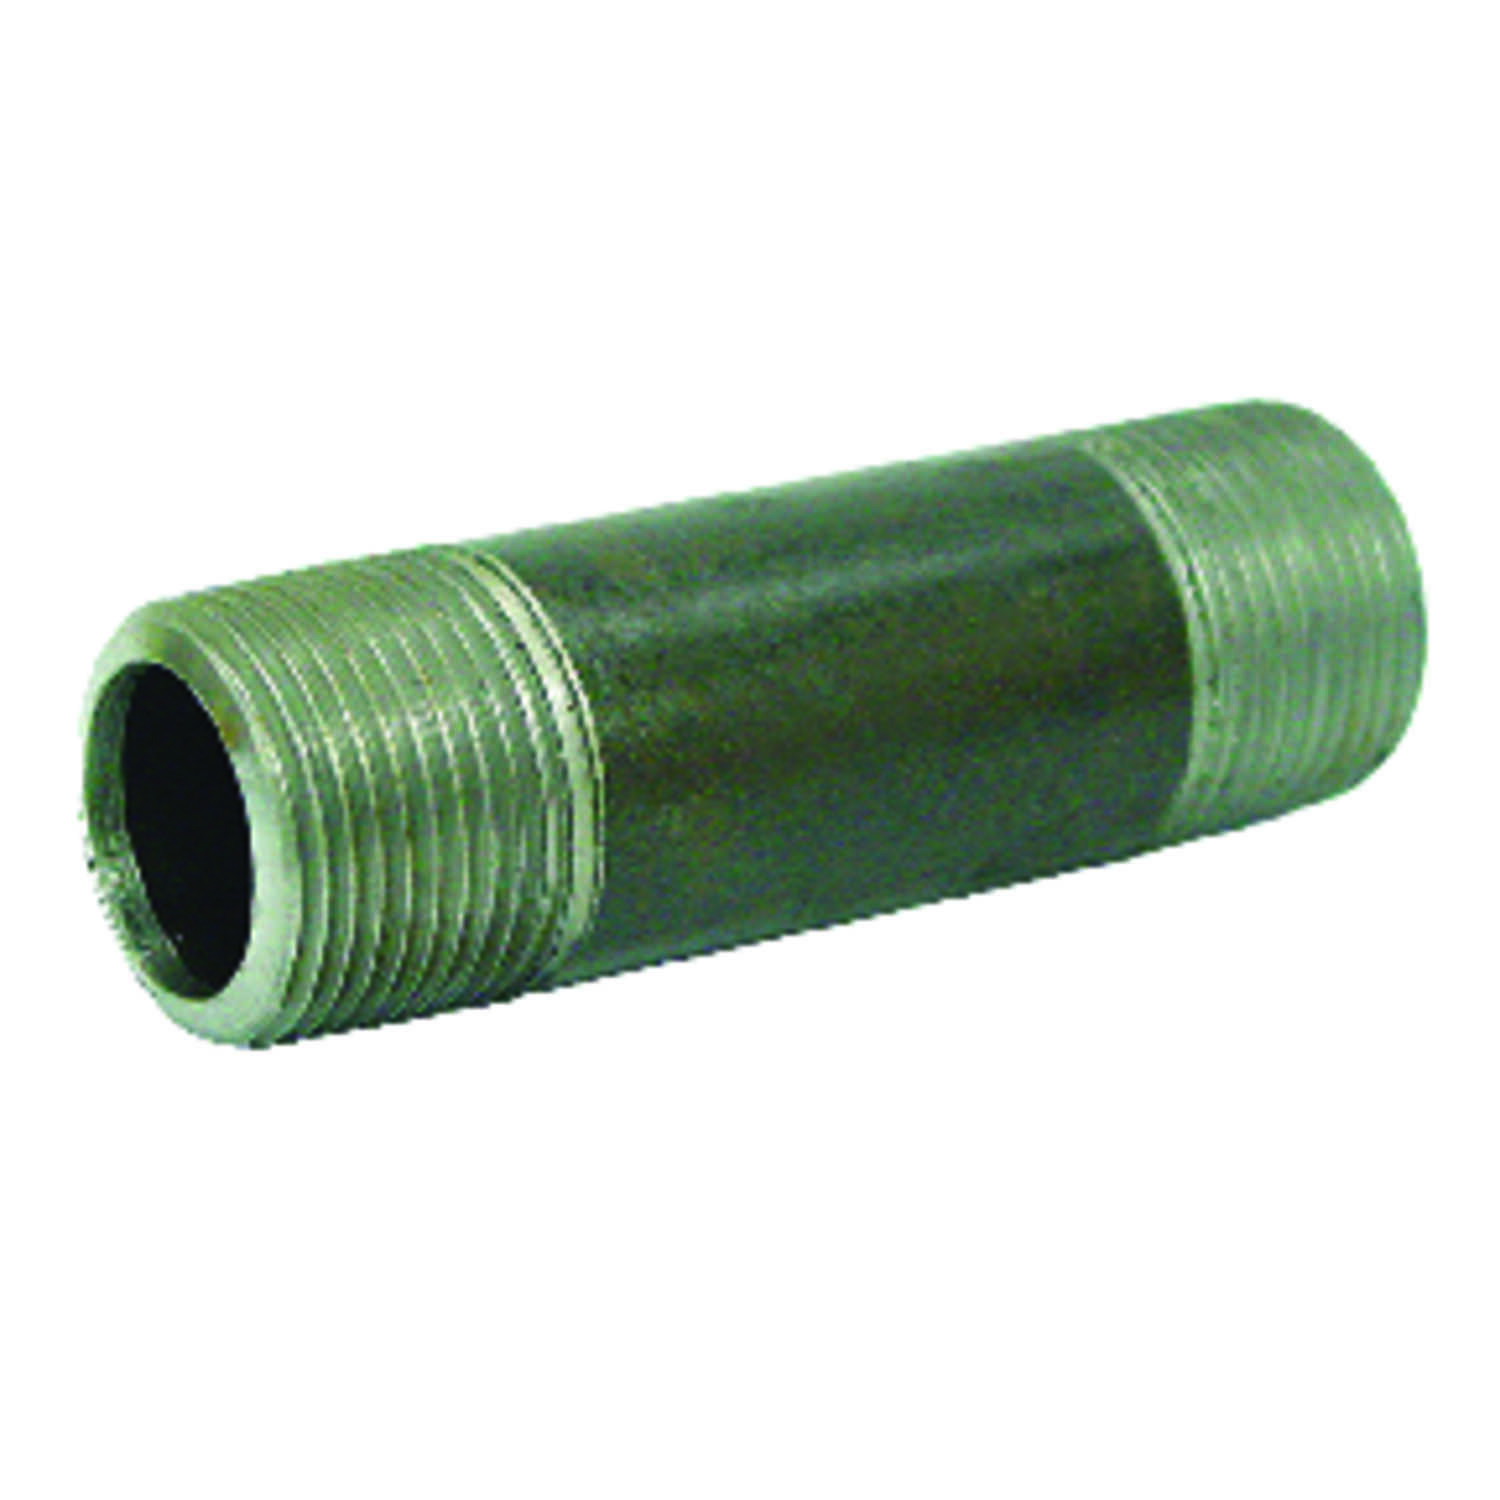 Anvil  1-1/2 in. MPT   x 1-1/2 in. Dia. x 2-1/2 in. L MPT  Galvanized  Steel  Pipe Nipple